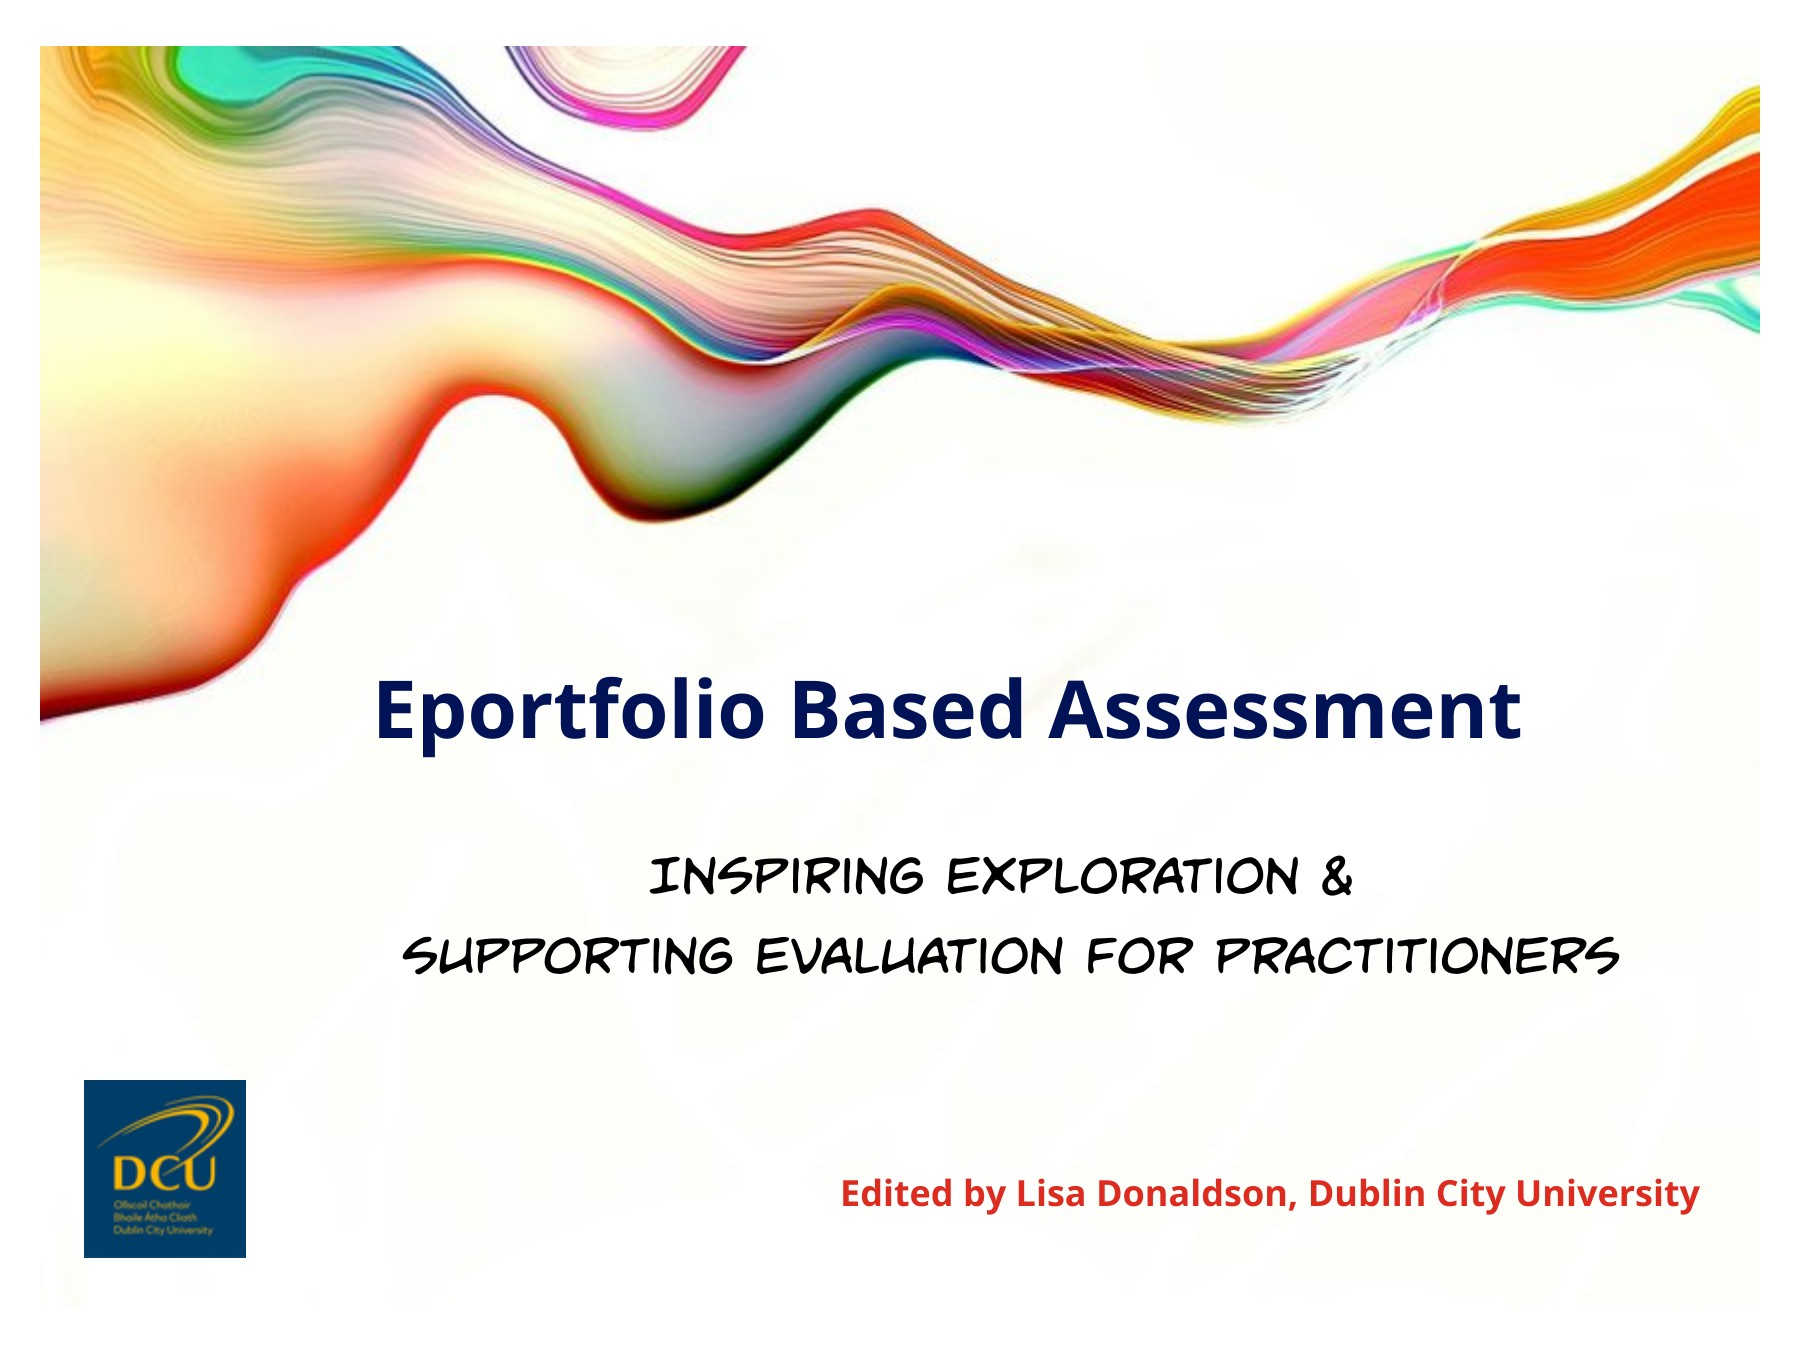 Eportfolio Based Assessment - Inspiring Exploration and Supporting Evaluation for Practitioners